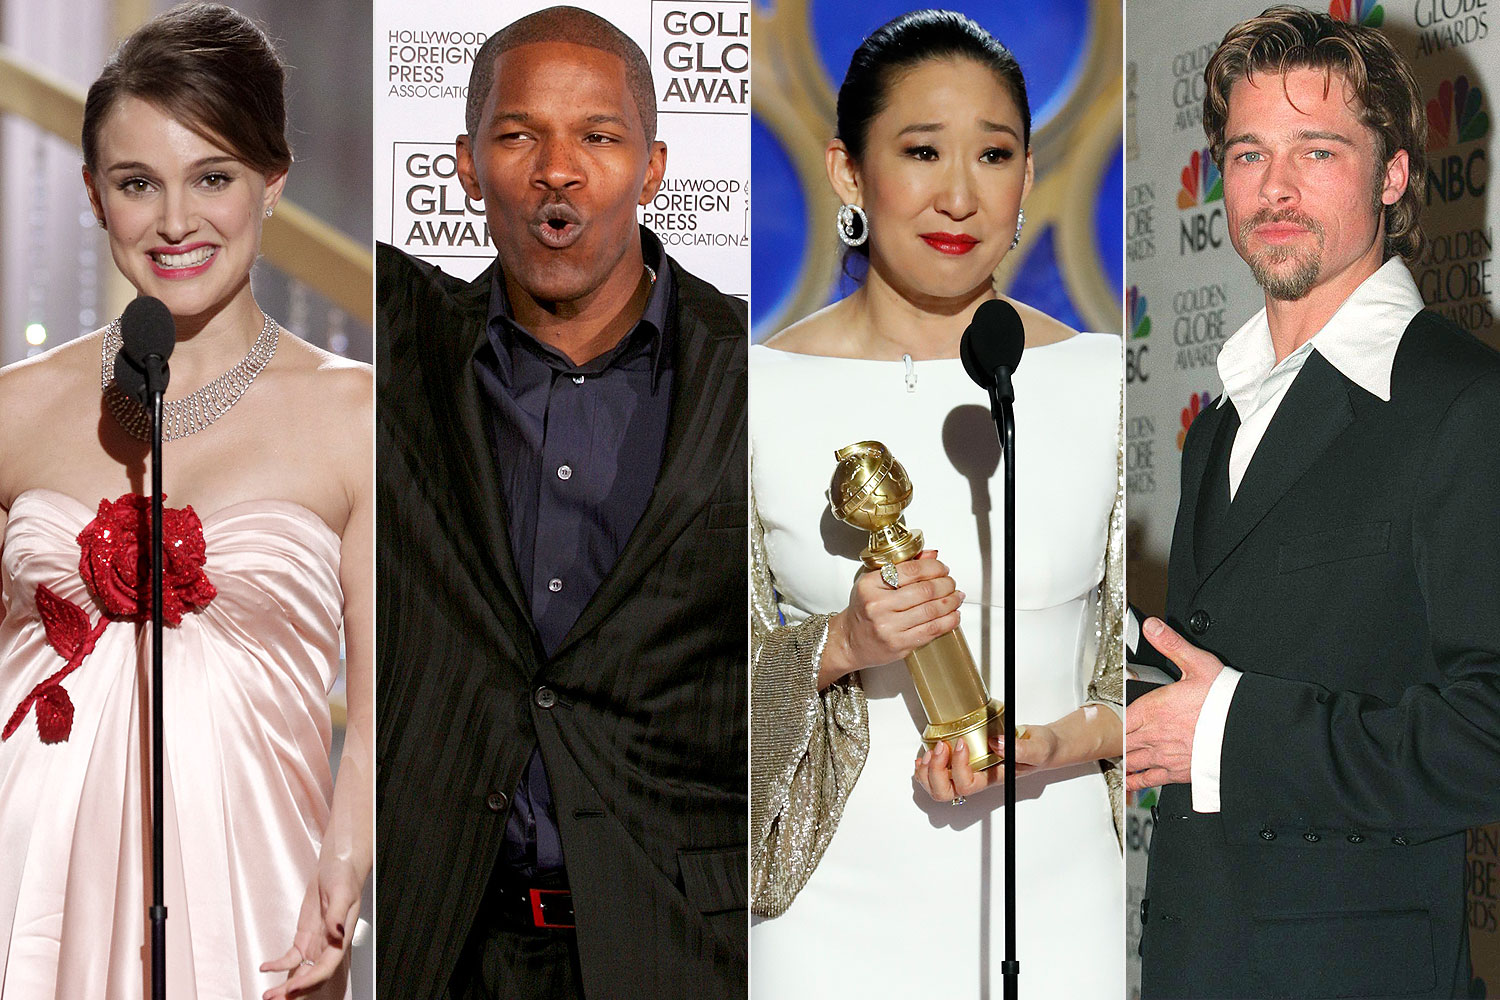 Winner for Most Unpredictable Award Show goes to the Golden Globes